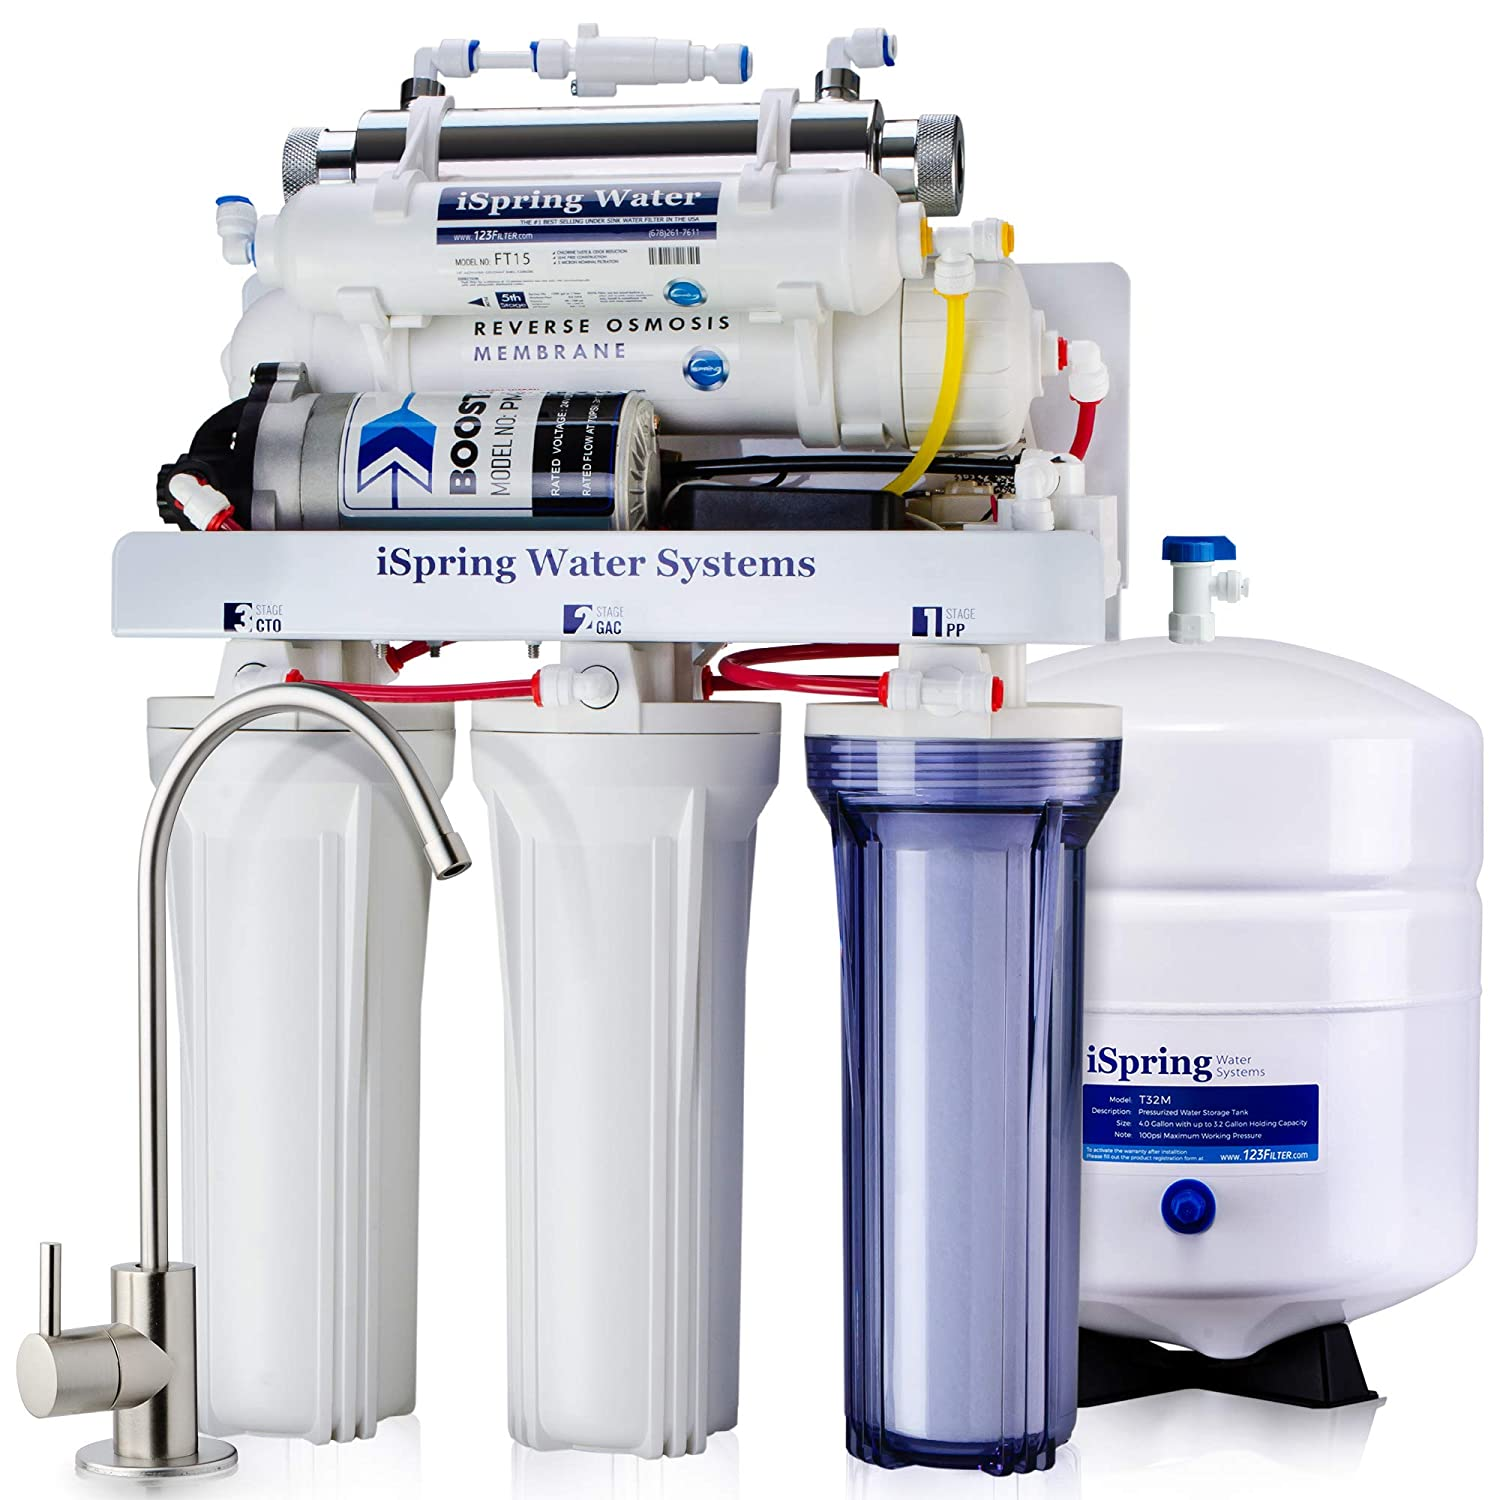 iSpring RCC1UP - 100GPD 6-Stage Reverse Osmosis features Real Booster Pump, 11w UV w/Flow Sensor Switch, and Clear Housing in 1st stage. 110V & 220V compatible